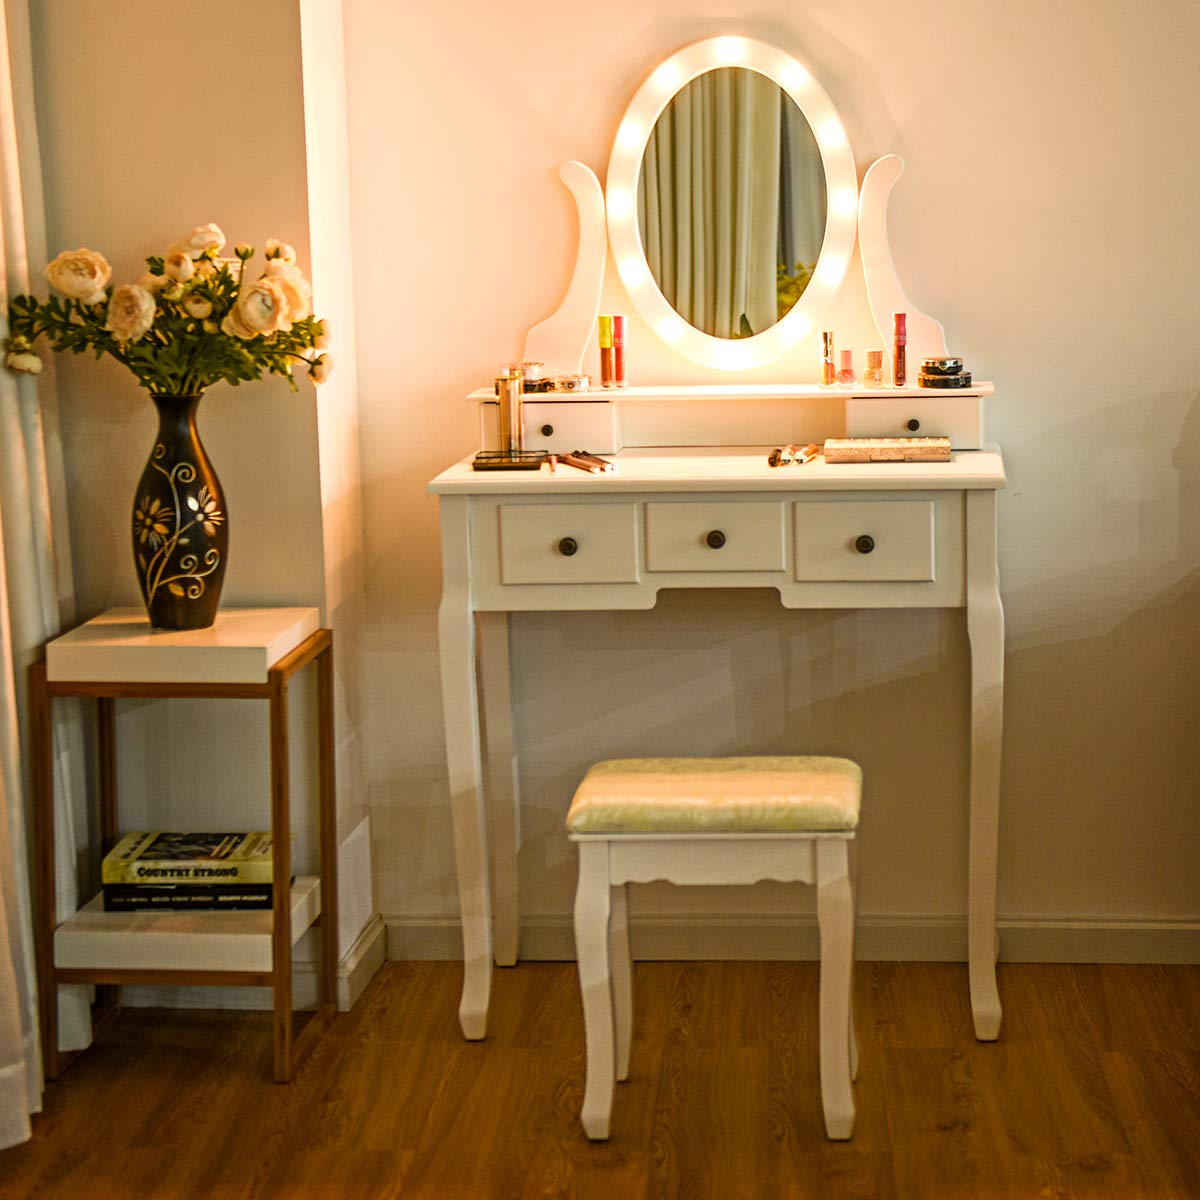 . Giantex Vanity Dressing Table Set with Makeup Mirror  with 12 LED Lights  Removable Top Organizer Muti Functional Writing Desk Padded Stool  Bedroom